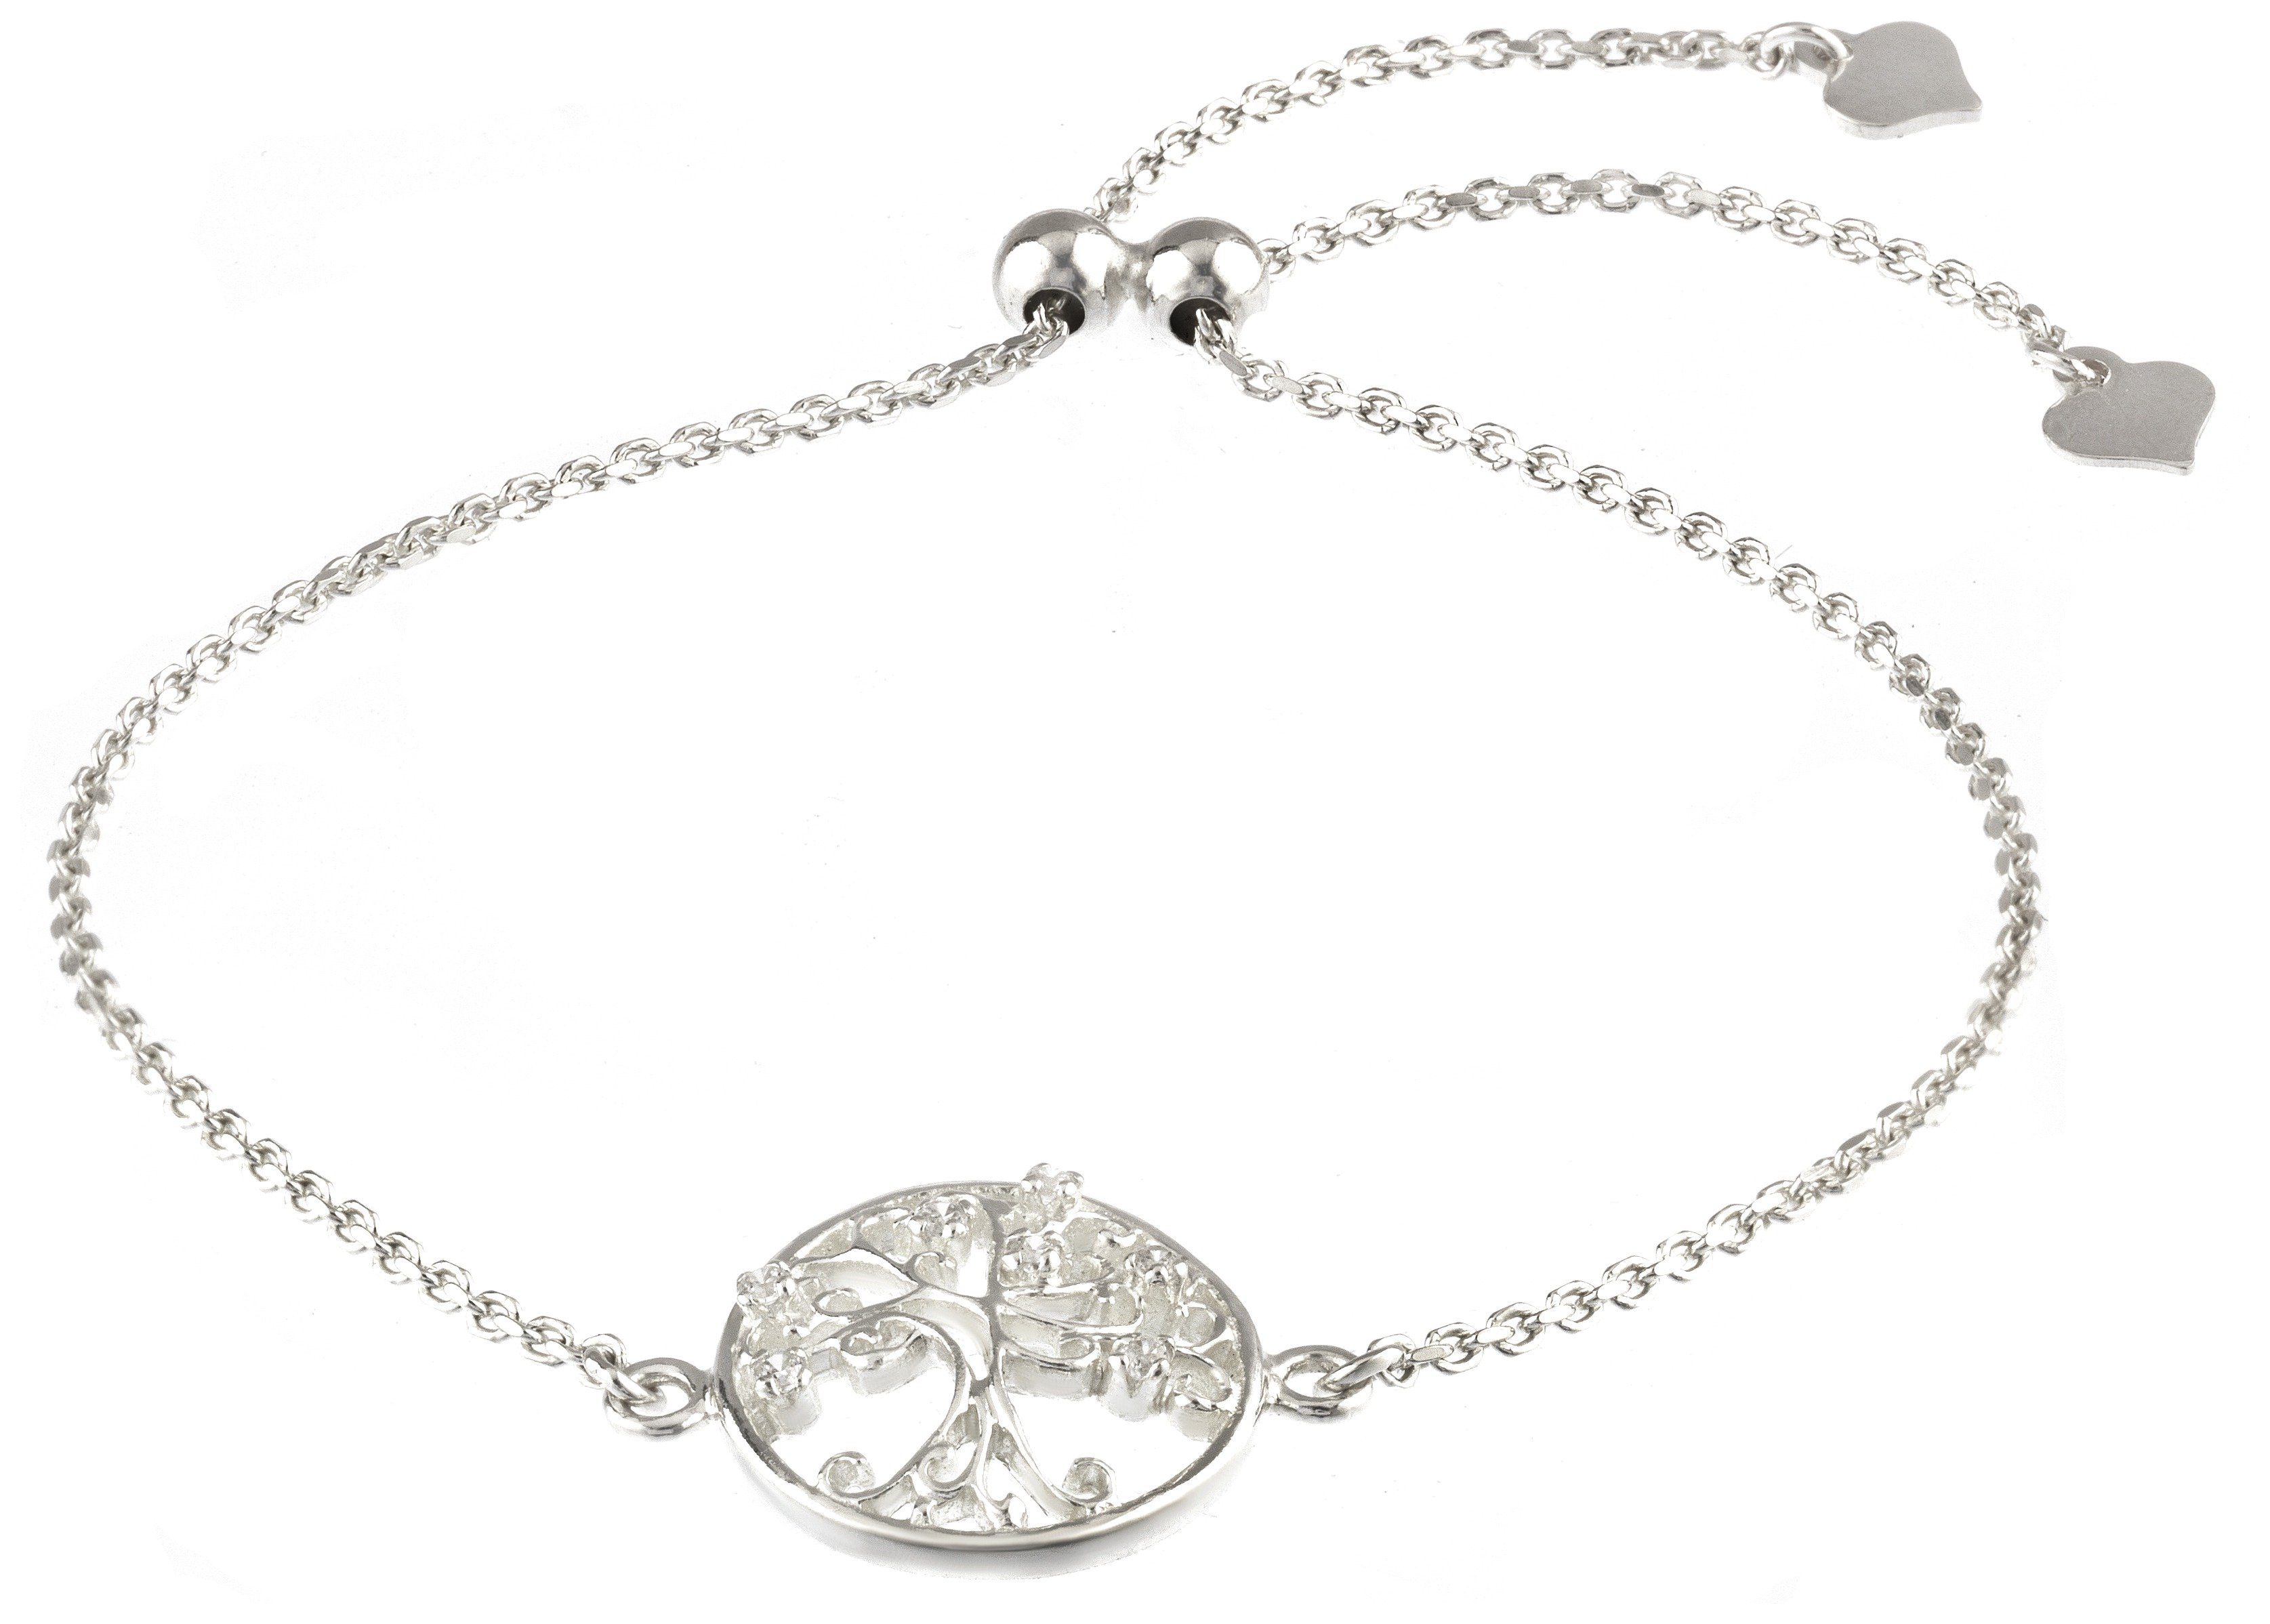 Image of Revere Sterling Silver Family Tree Slider Bracelet